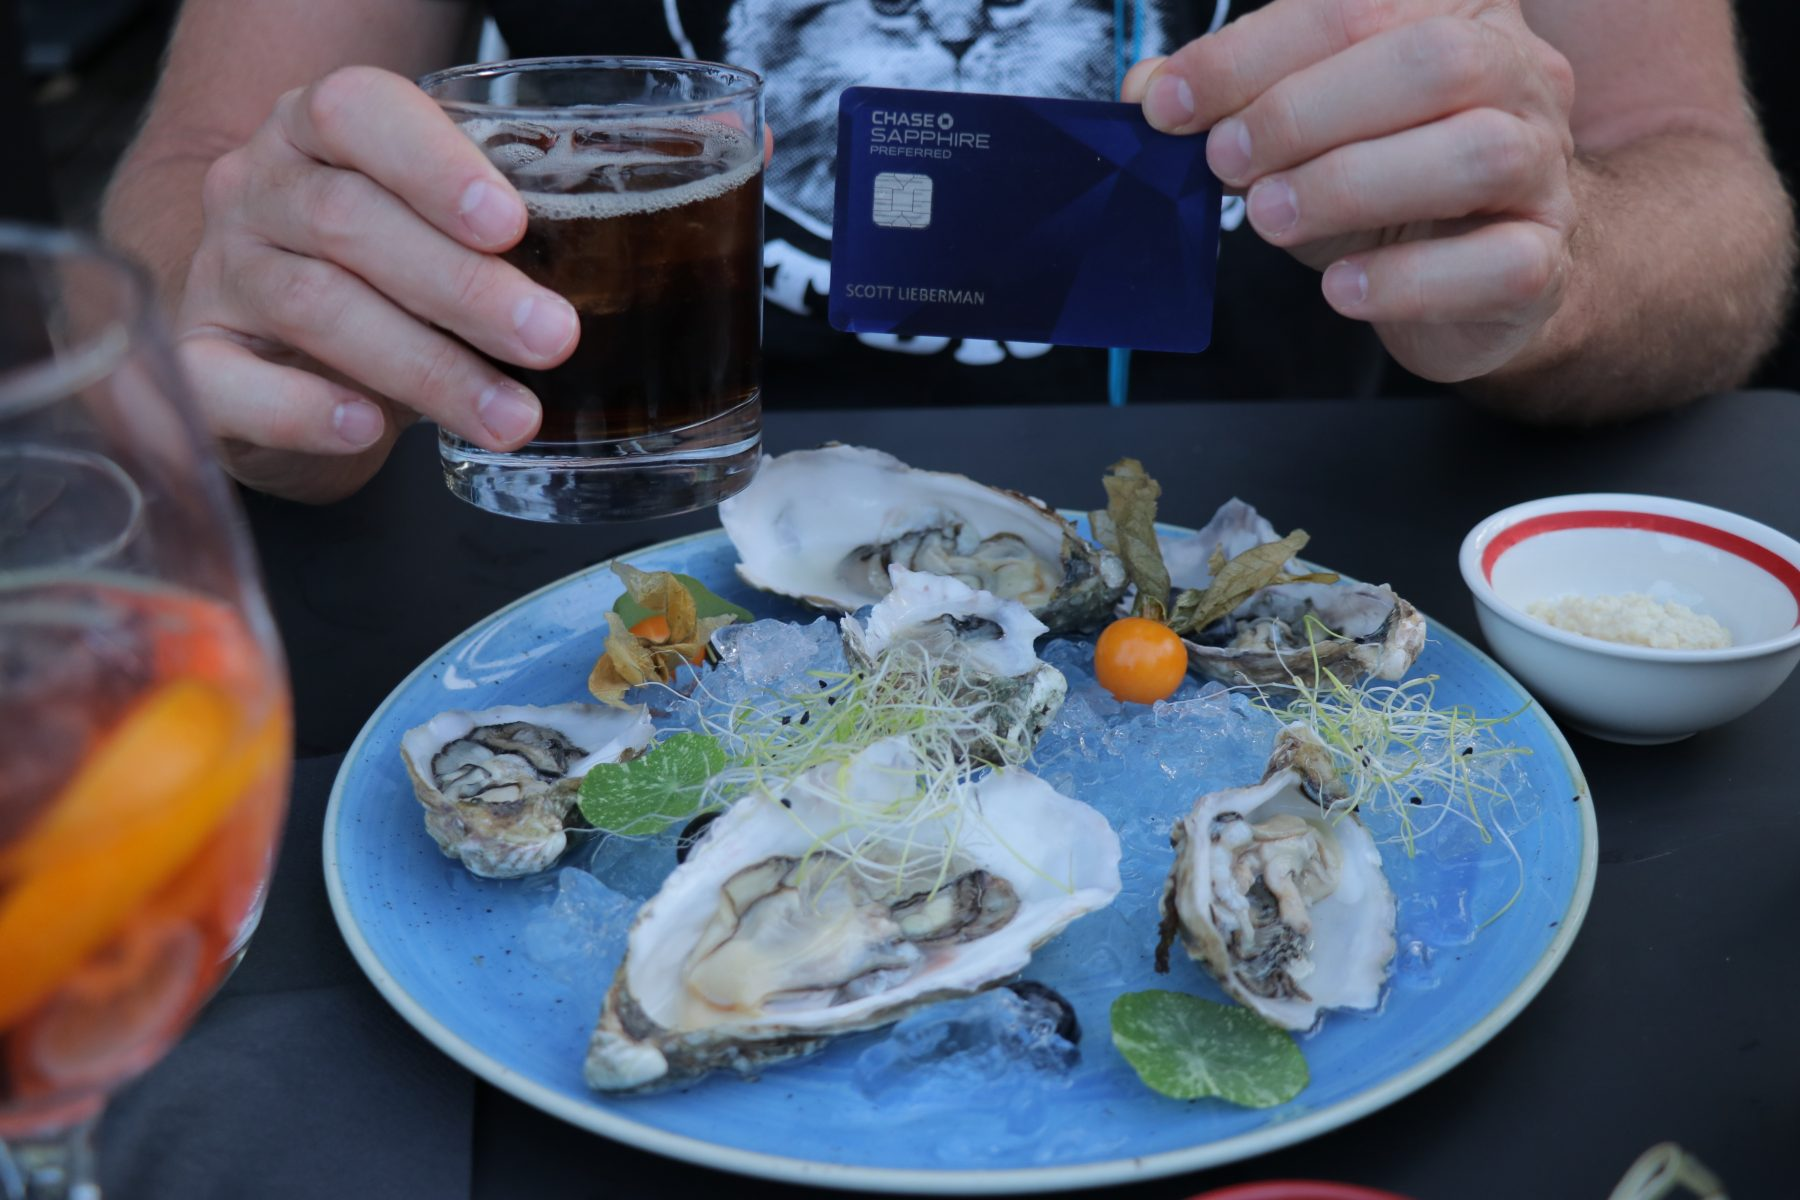 Earn 2X Chase Ultimate Rewards points at restaurants like I'm doing here eating lovely oysters while sipping an adult beverage